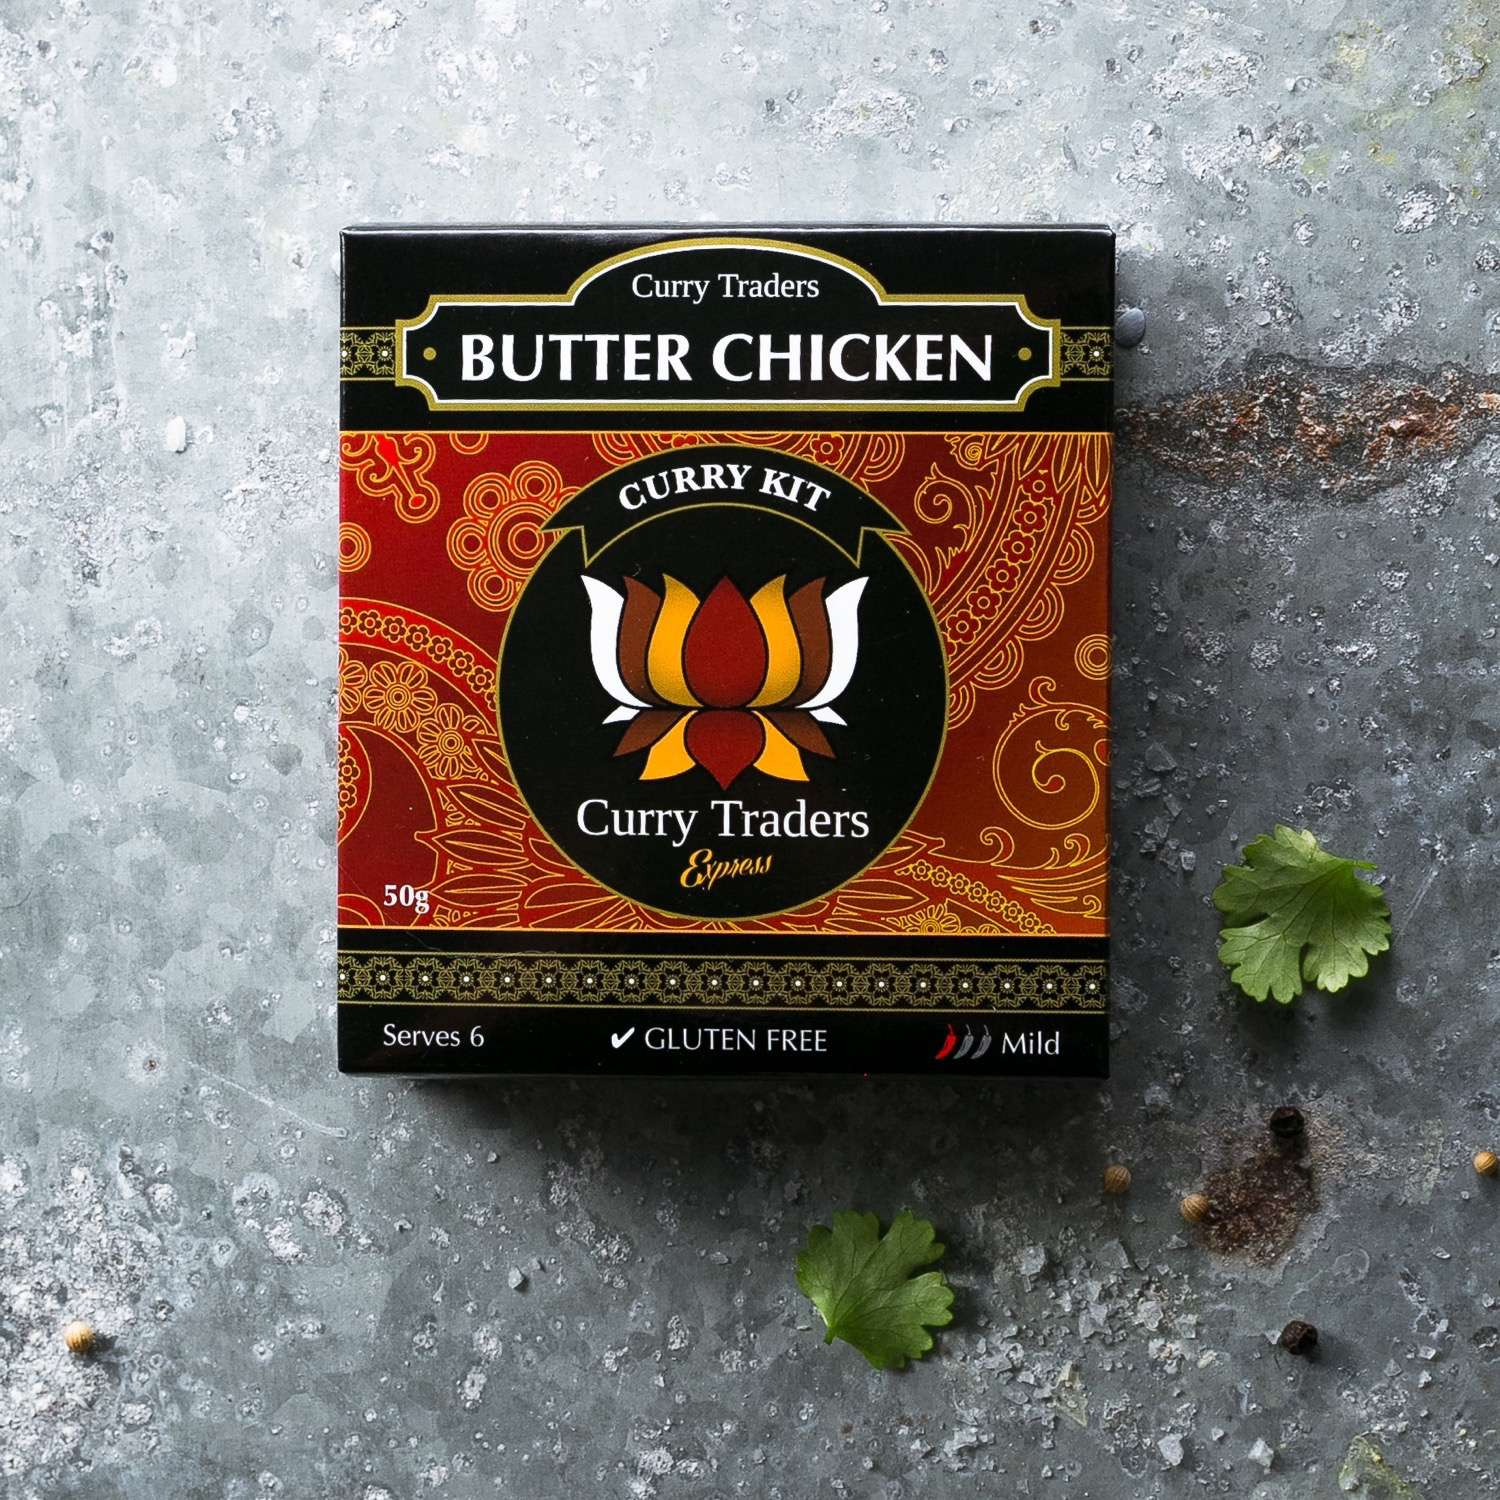 Butter Chicken Express Curry Kit to cook at home